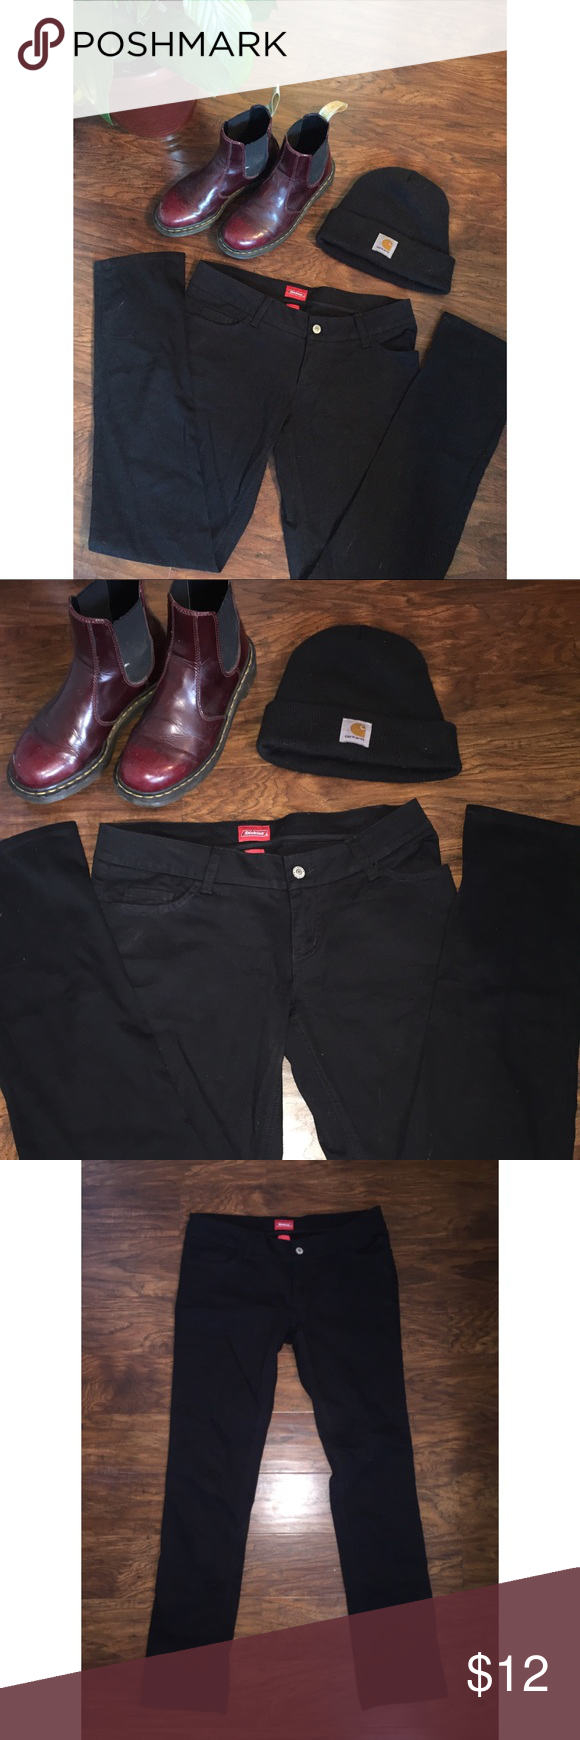 57317a574202 Size 11 Genuine Dickies black jeans 🖤 Size 11 juniors. Will fit size 7 and